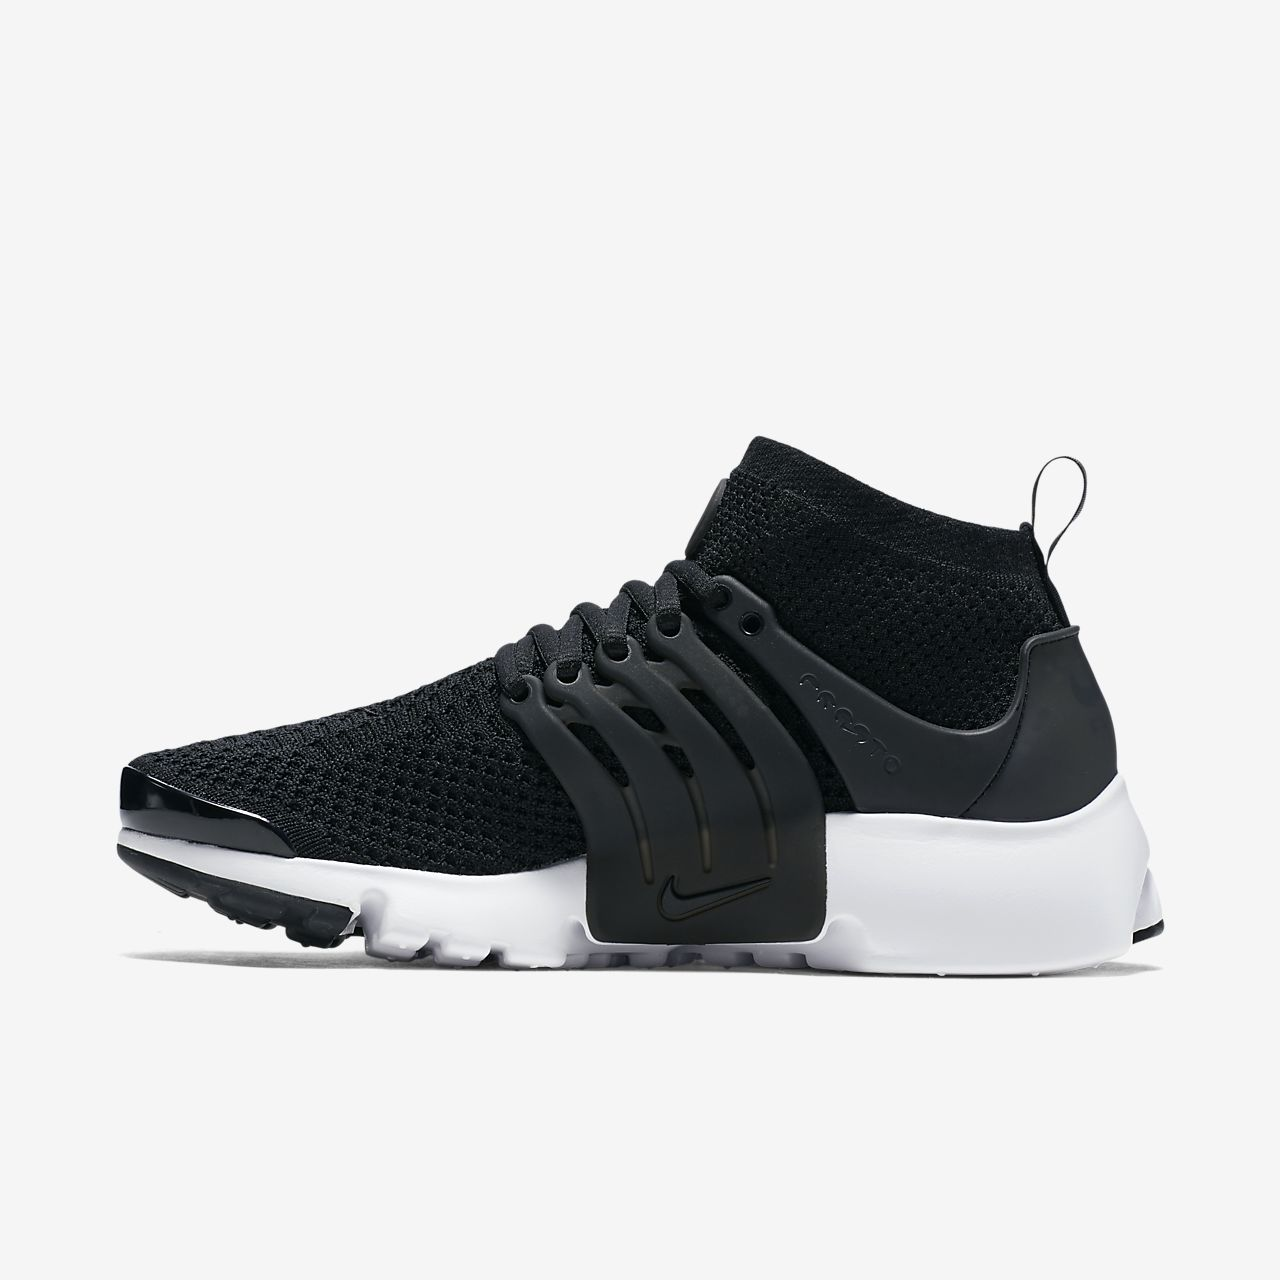 best service cbb44 3f5e9 Nike Air Presto   Nike Sneakers Online at Best Prices ...